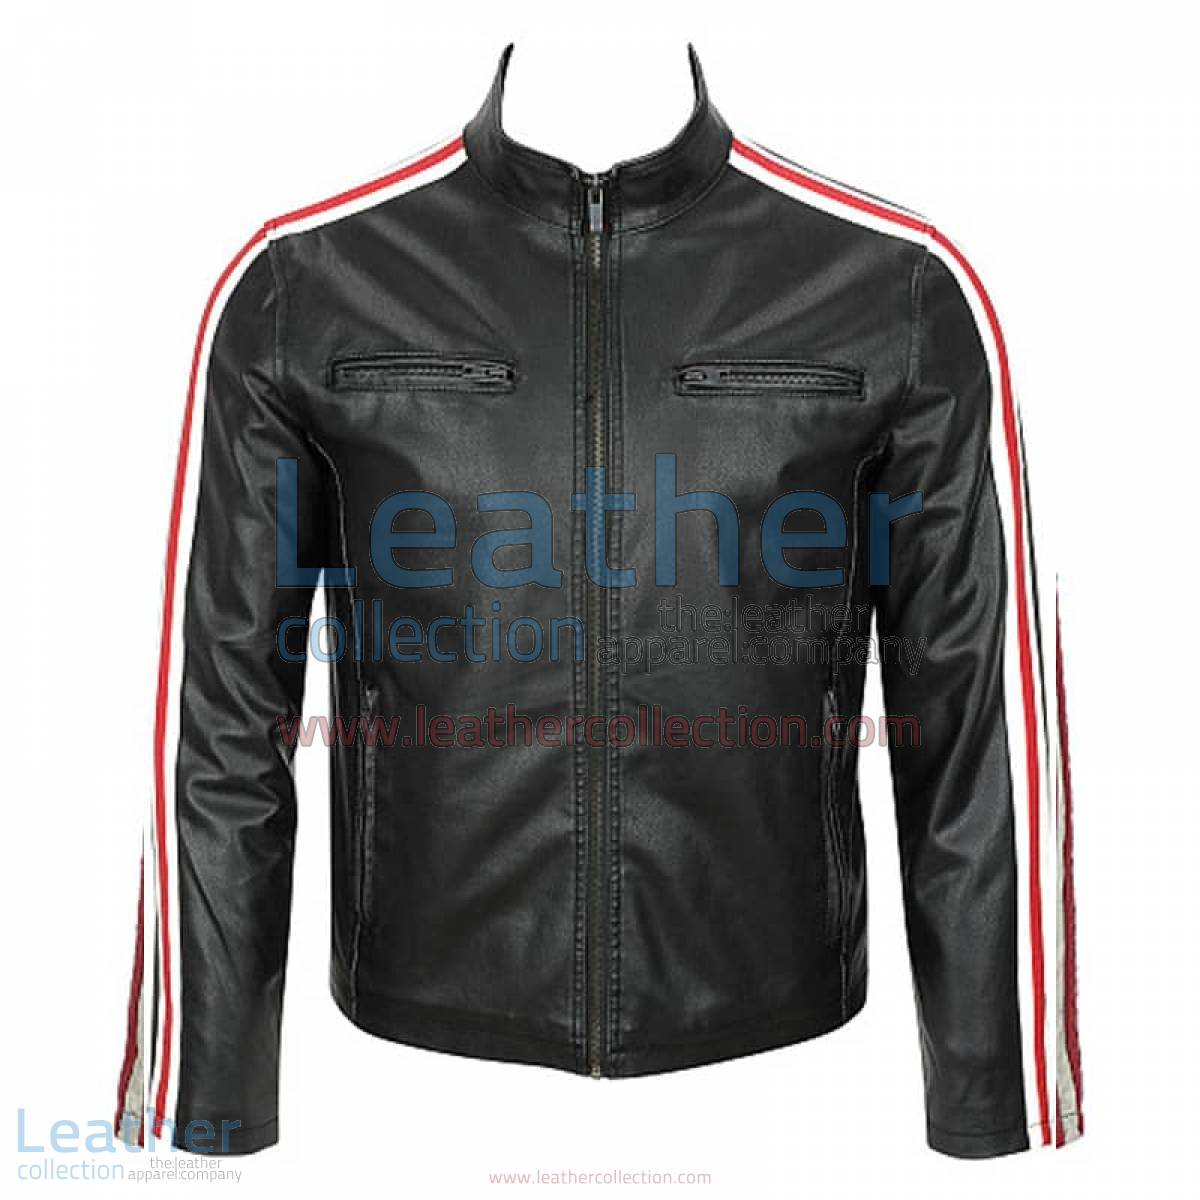 Leather Motorcycle Fashion Jacket | motorcycle fashion